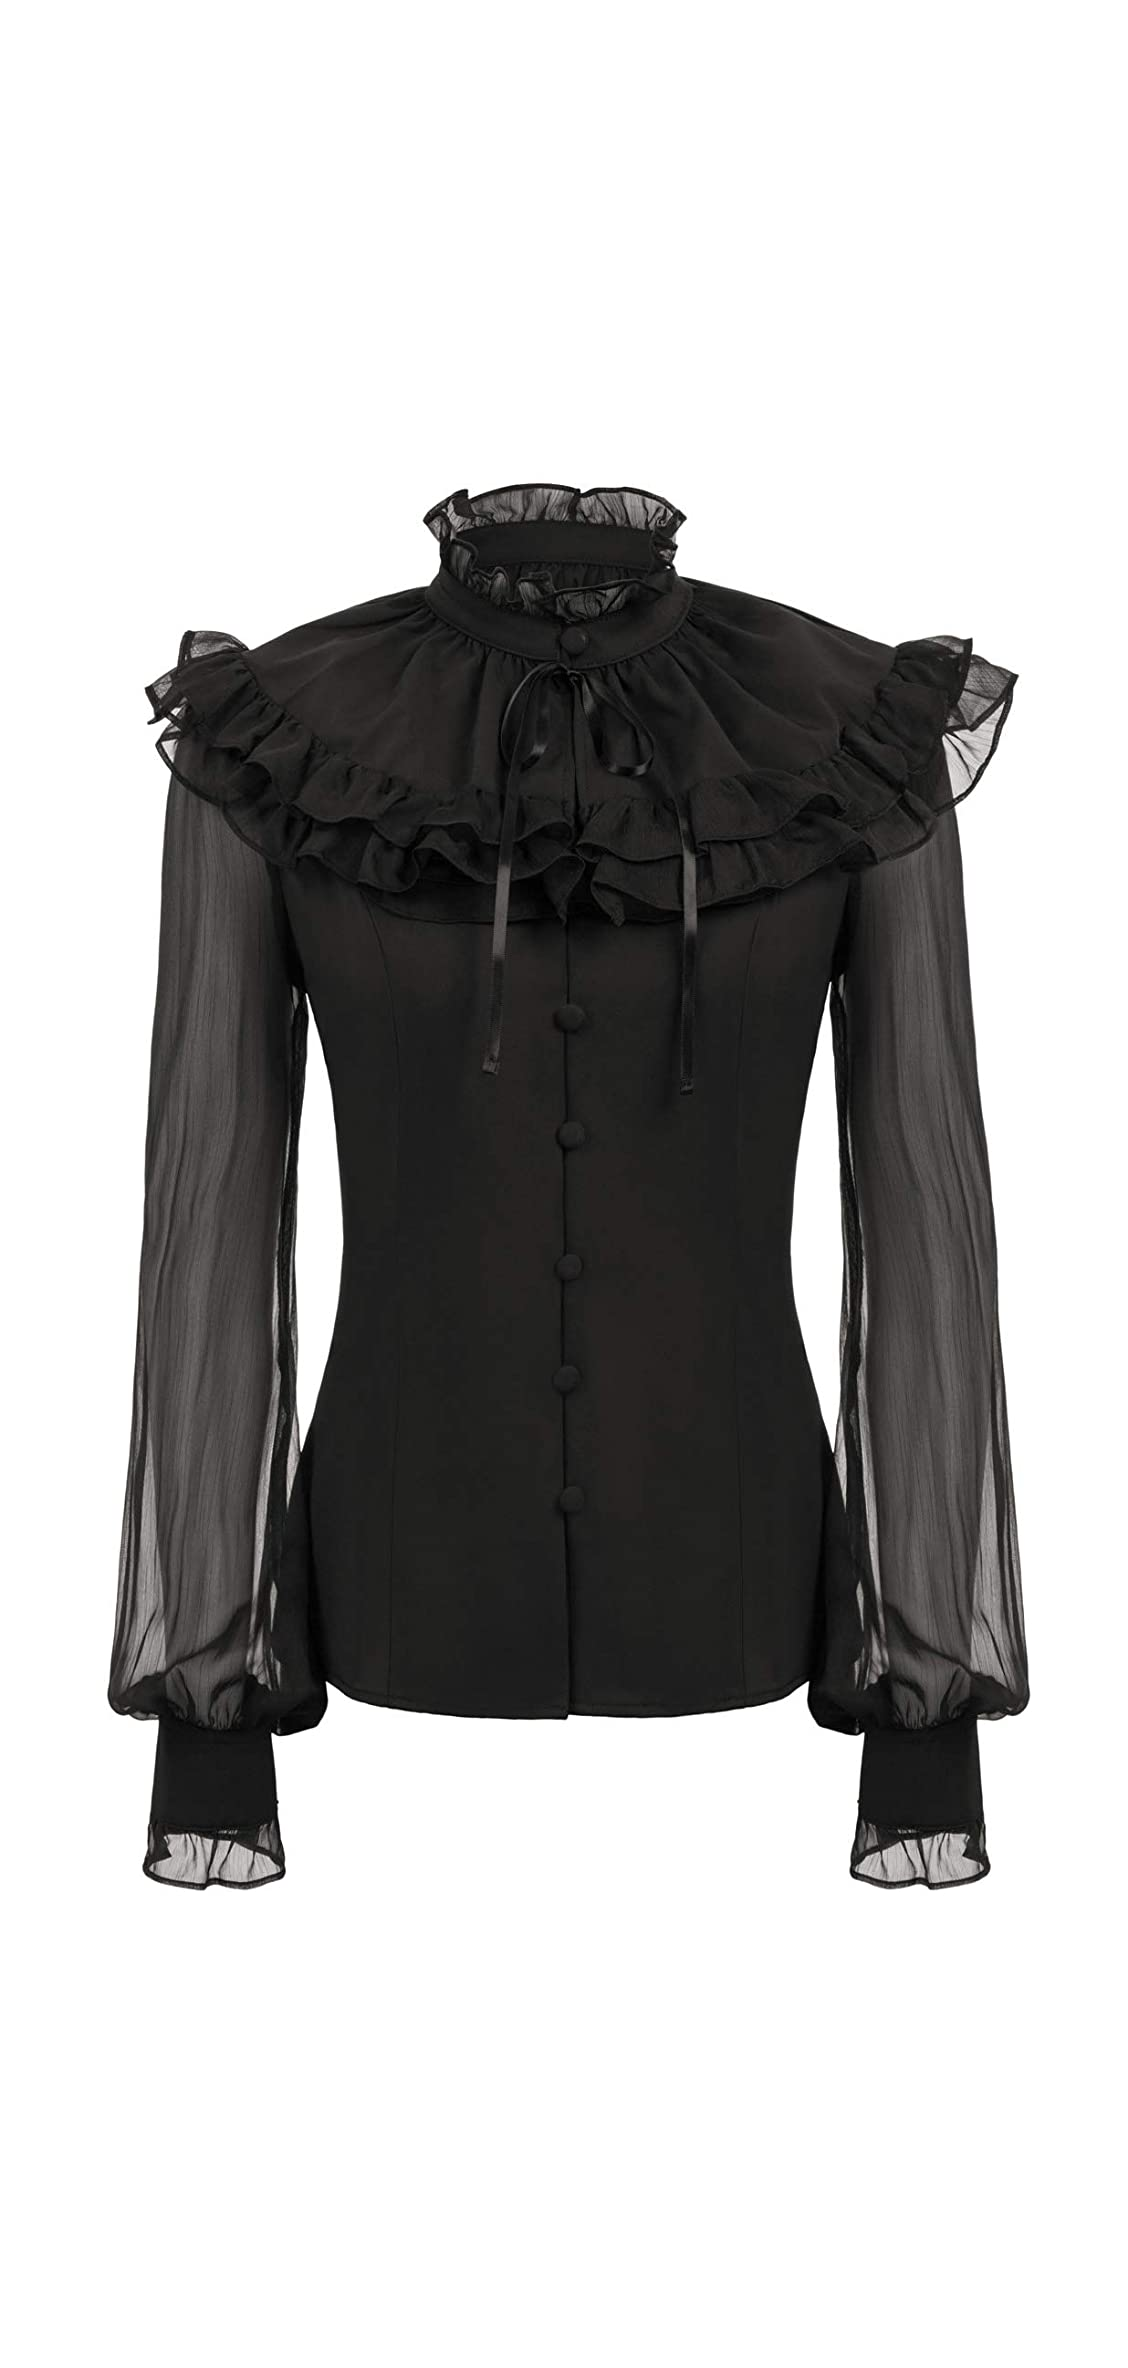 Womens Victorian Sheer Sleeve Lace Up Back